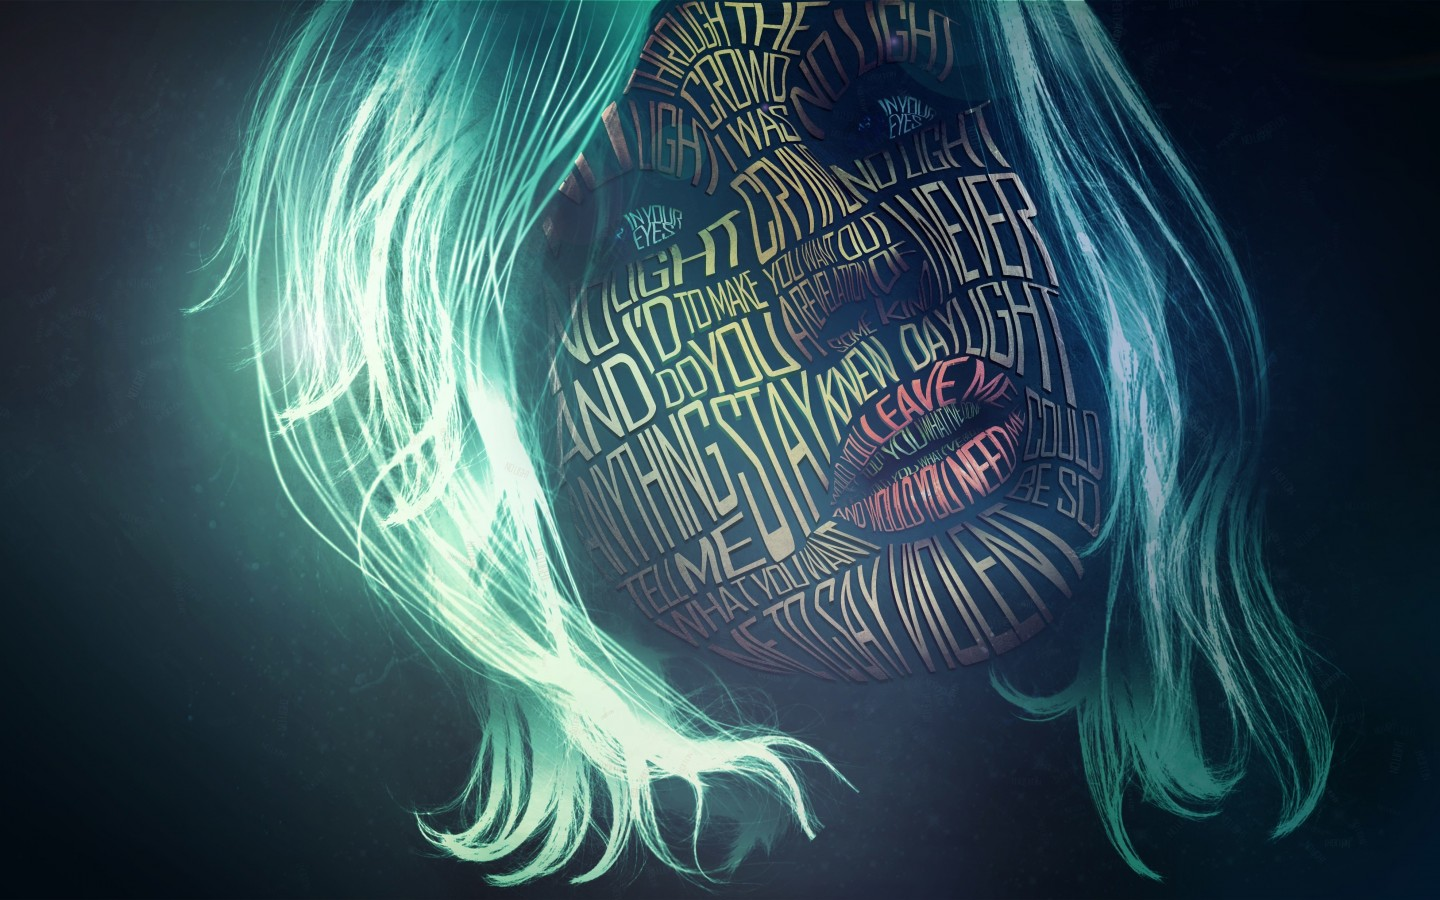 Woman Face Typography Wallpaper for Desktop 1440x900